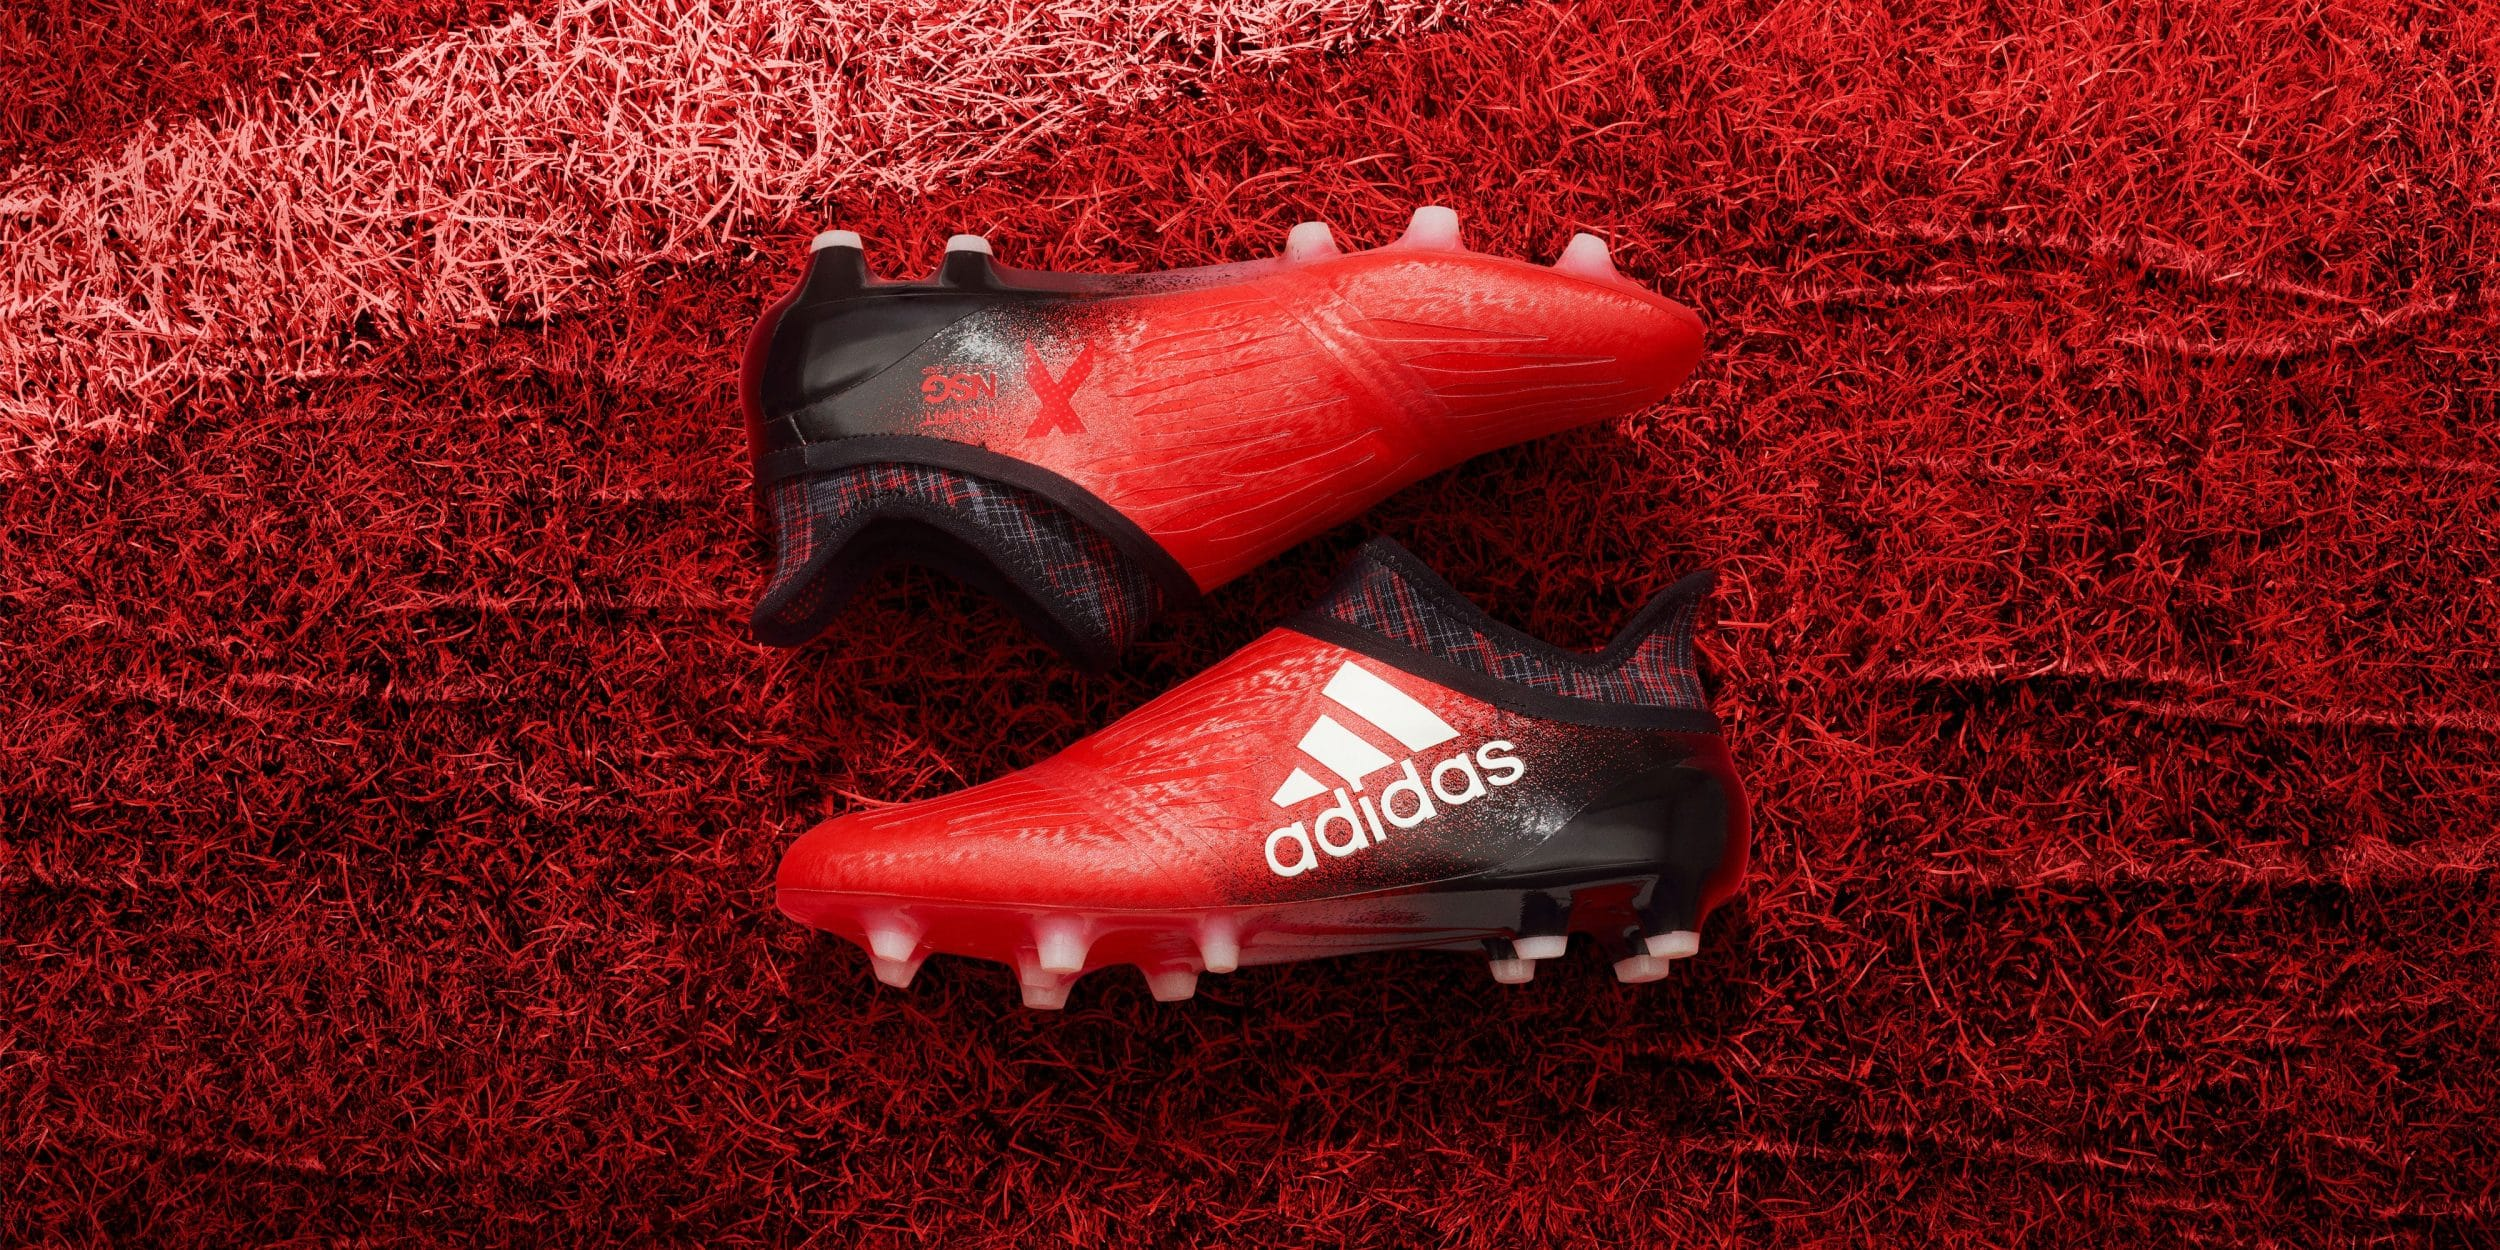 chaussure-football-adidas-x16-red-limit-novembre-2016-stadium